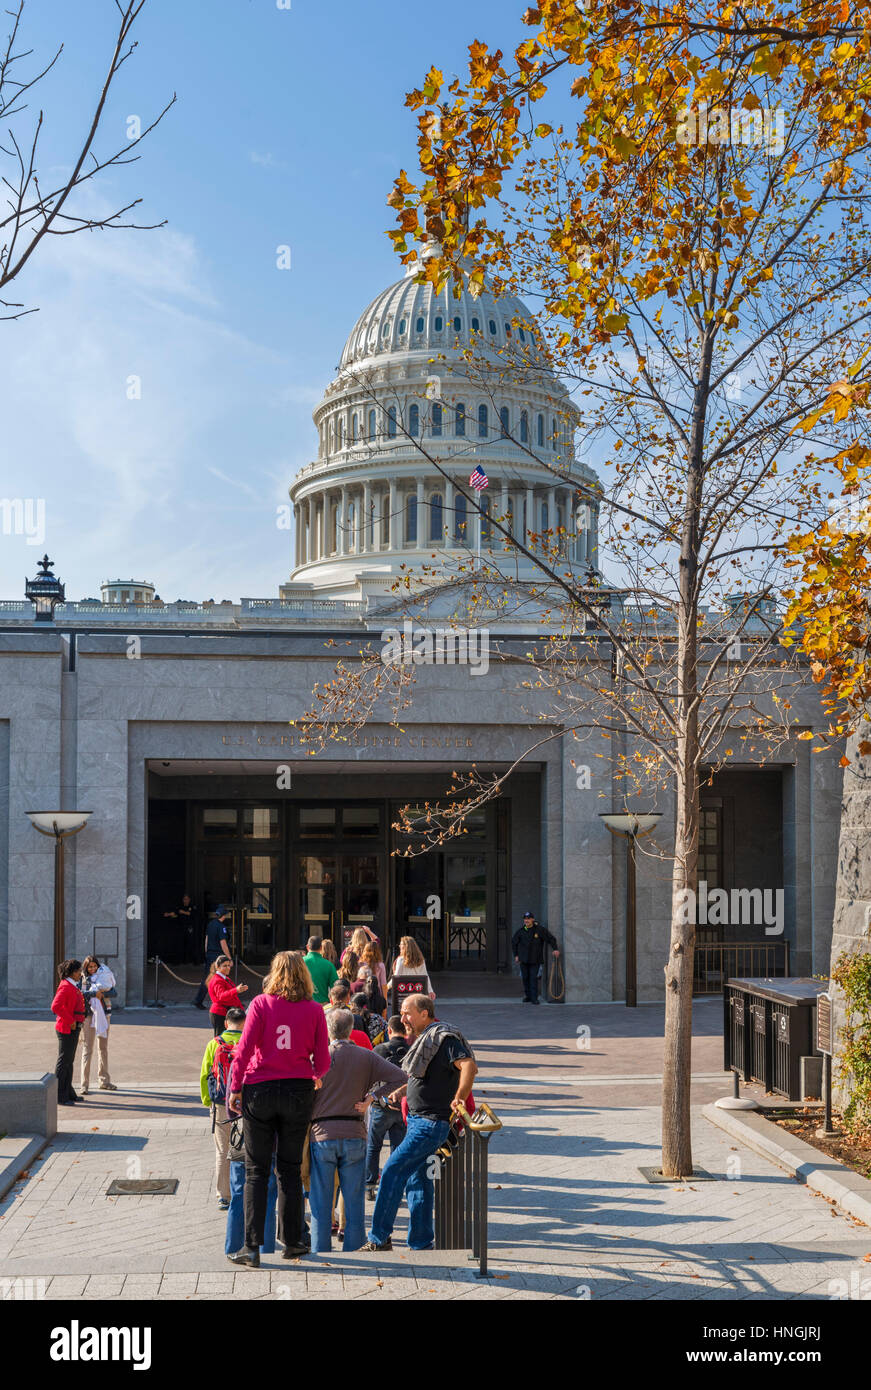 Visitors lining up outside the entrance to the United States Capitol Visitor Center Washington DC, USA - Stock Image